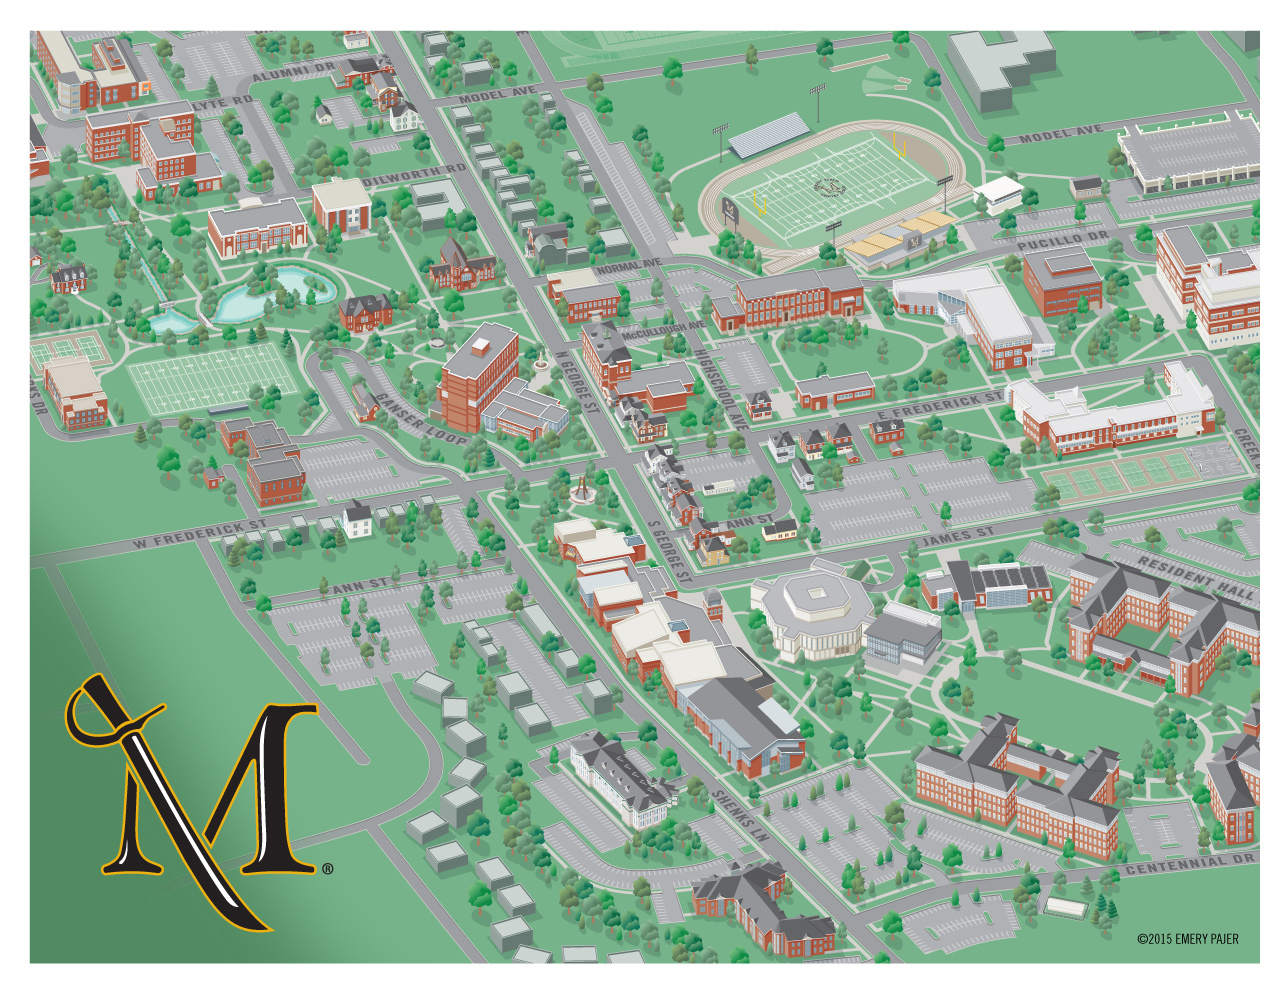 City & College Campus Map Illustration & Design Design A City Map on